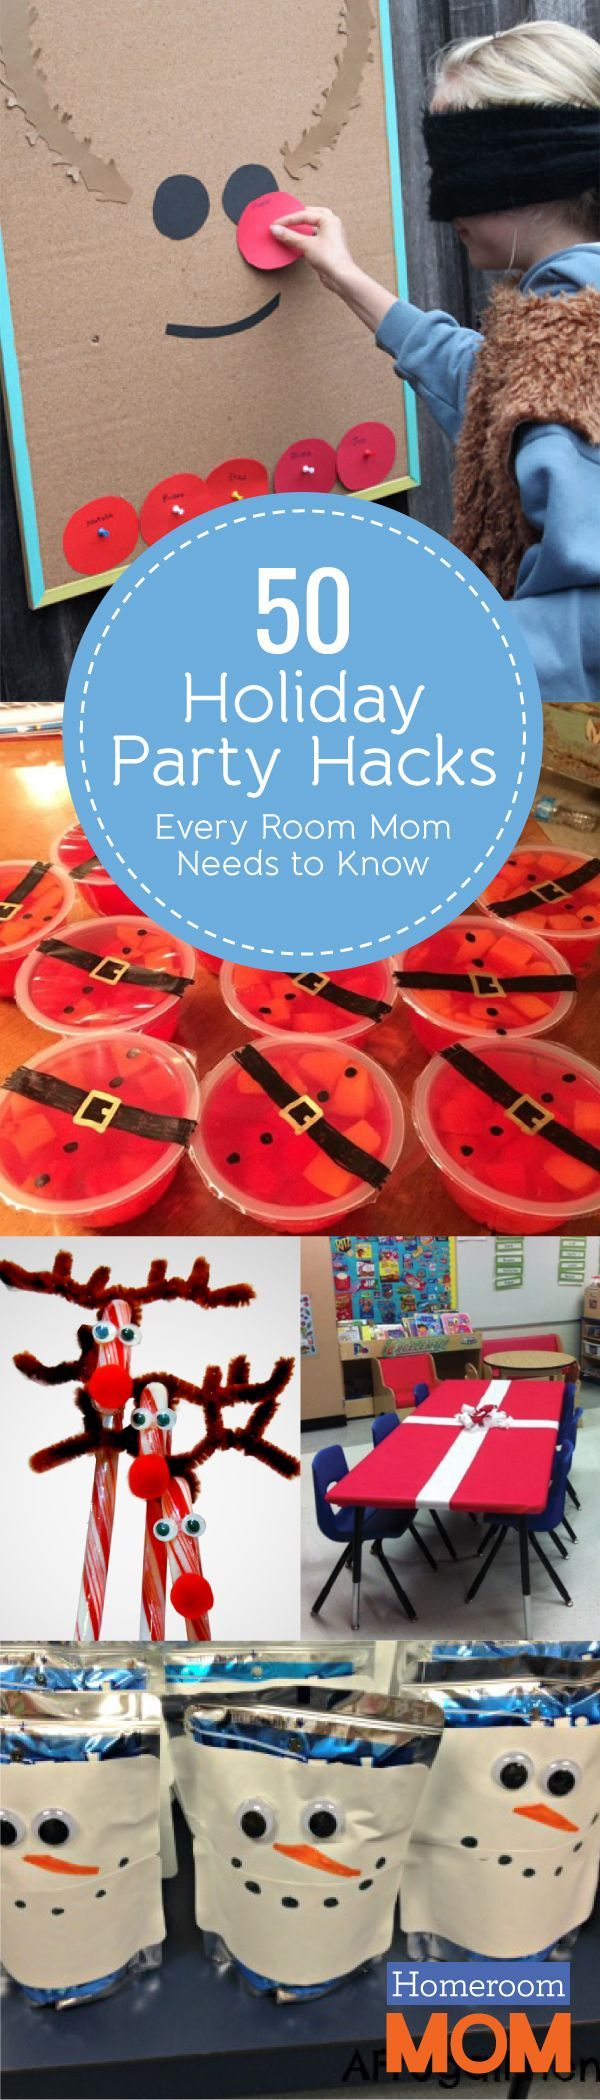 Elementary Christmas Party Ideas Part - 38: Kidu0027s School Christmas Party Ideas | Kids S, Room Mom And School Christmas  Party